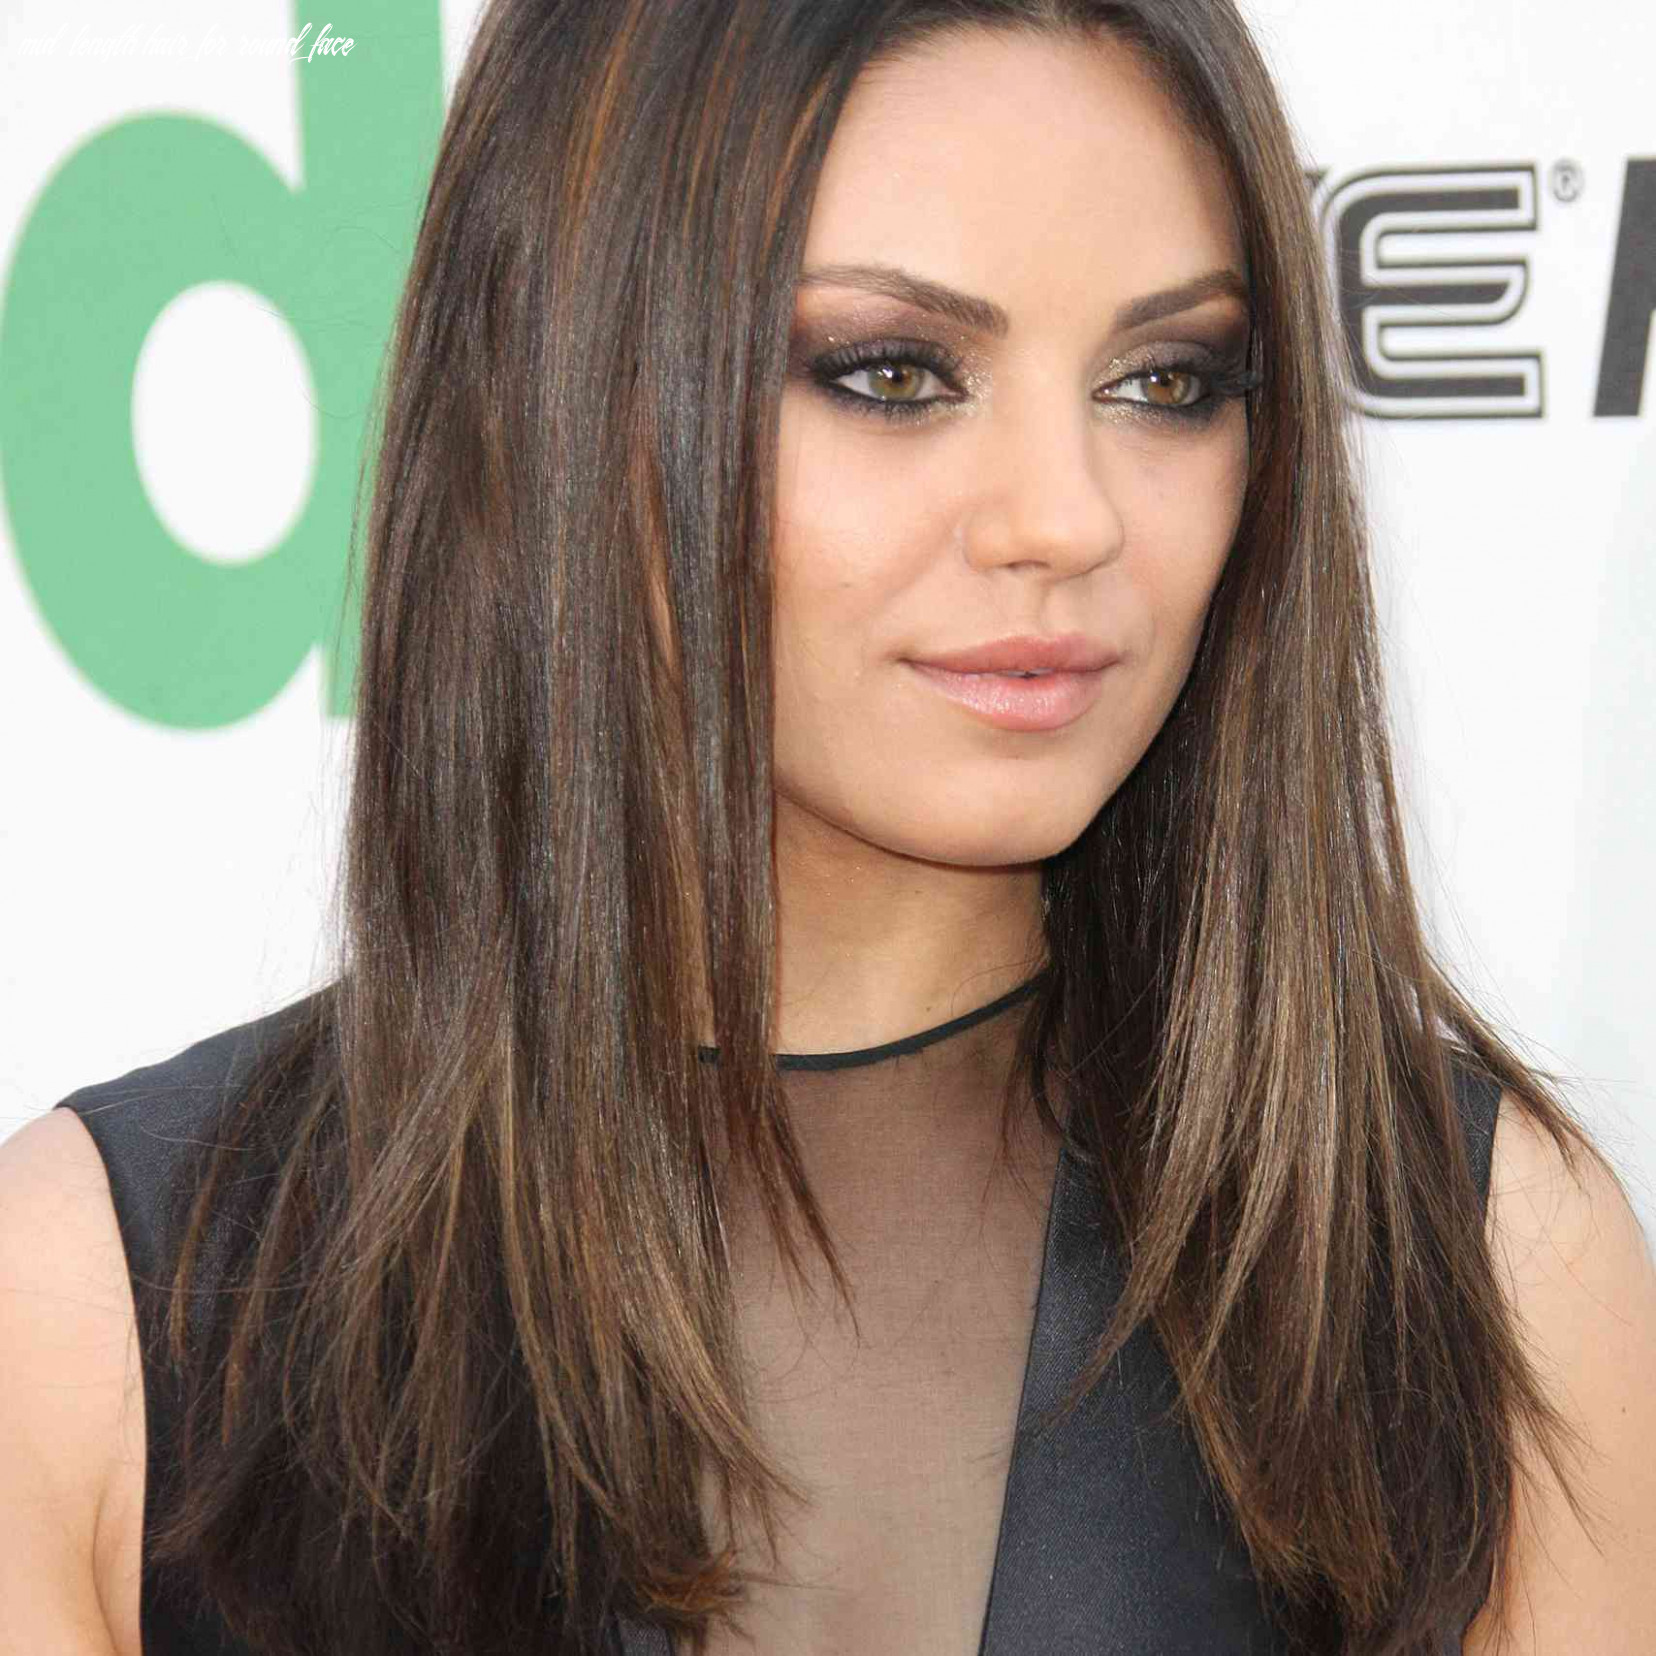 8 Flattering Hairstyles for Round Faces